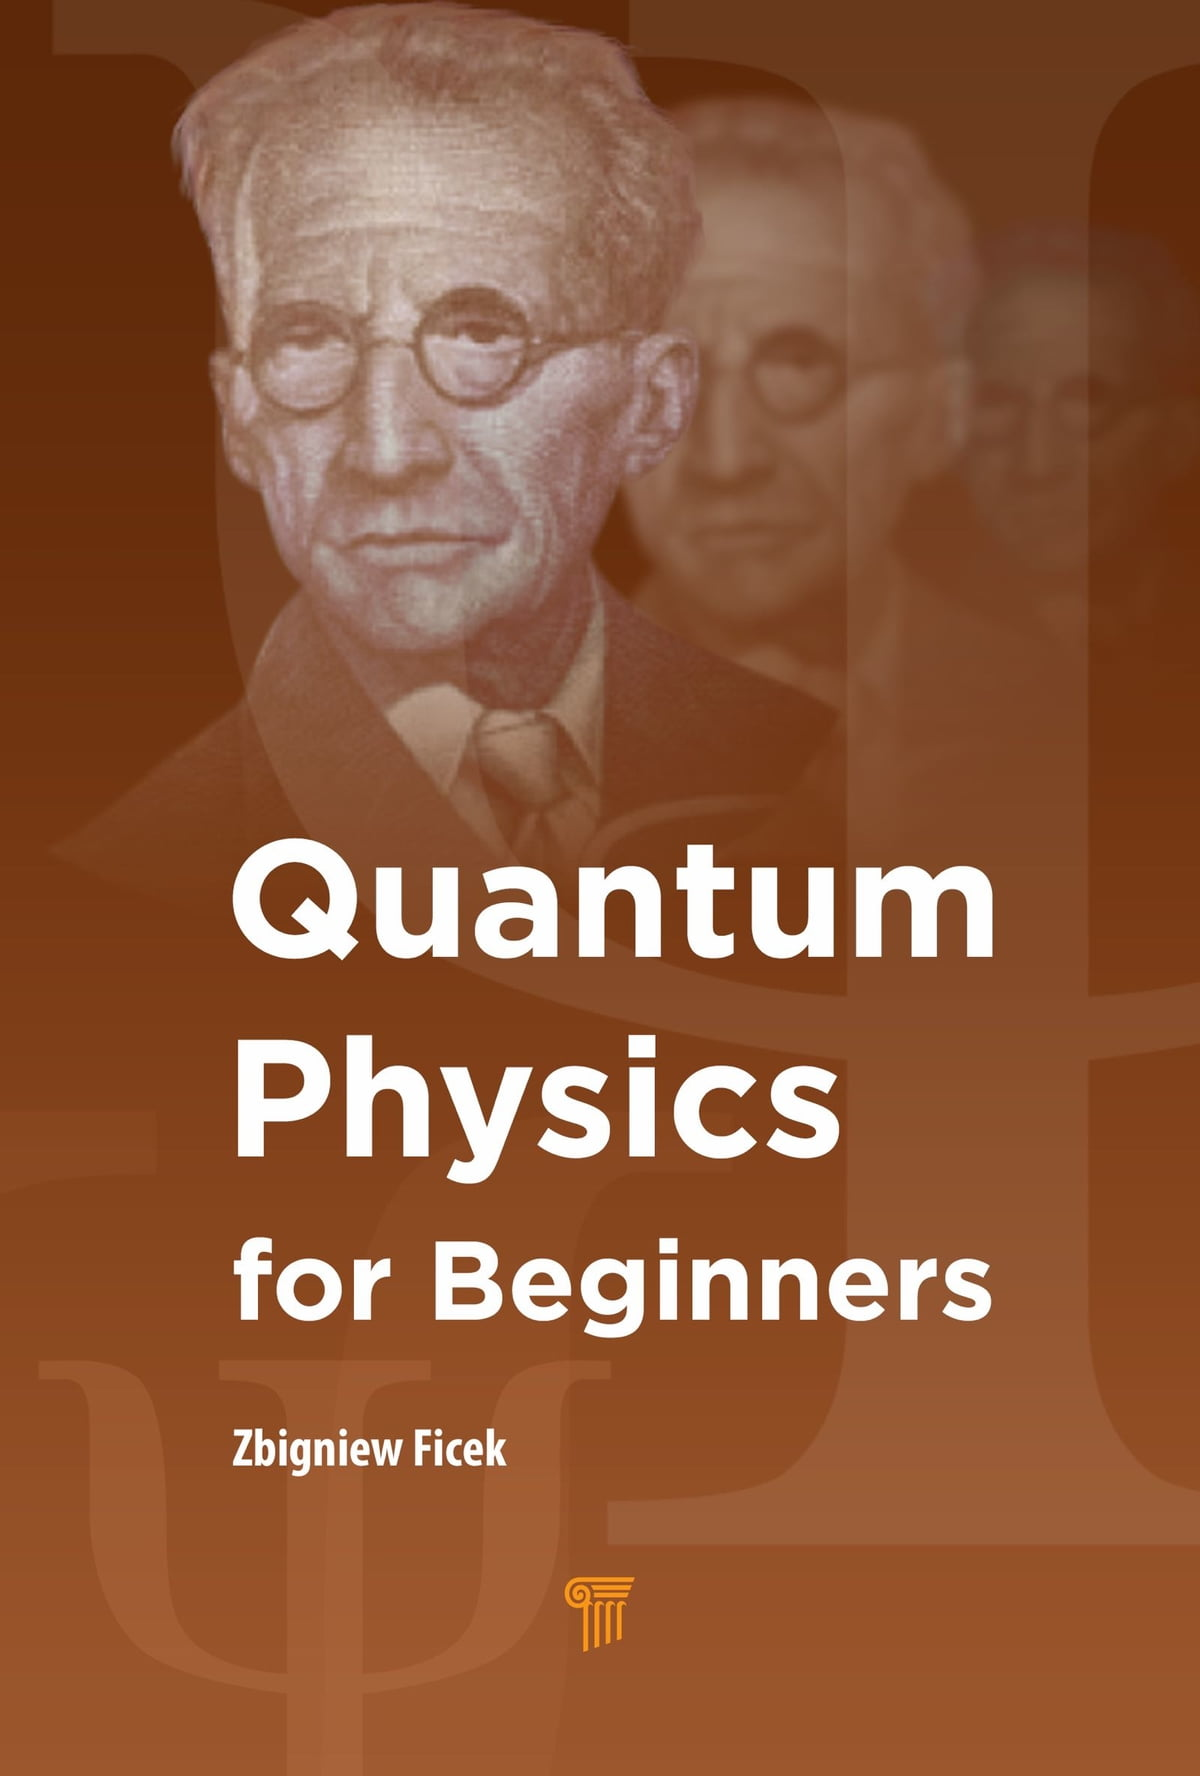 Quantum Physics For Beginners Ebook By Zbigniew Ficek